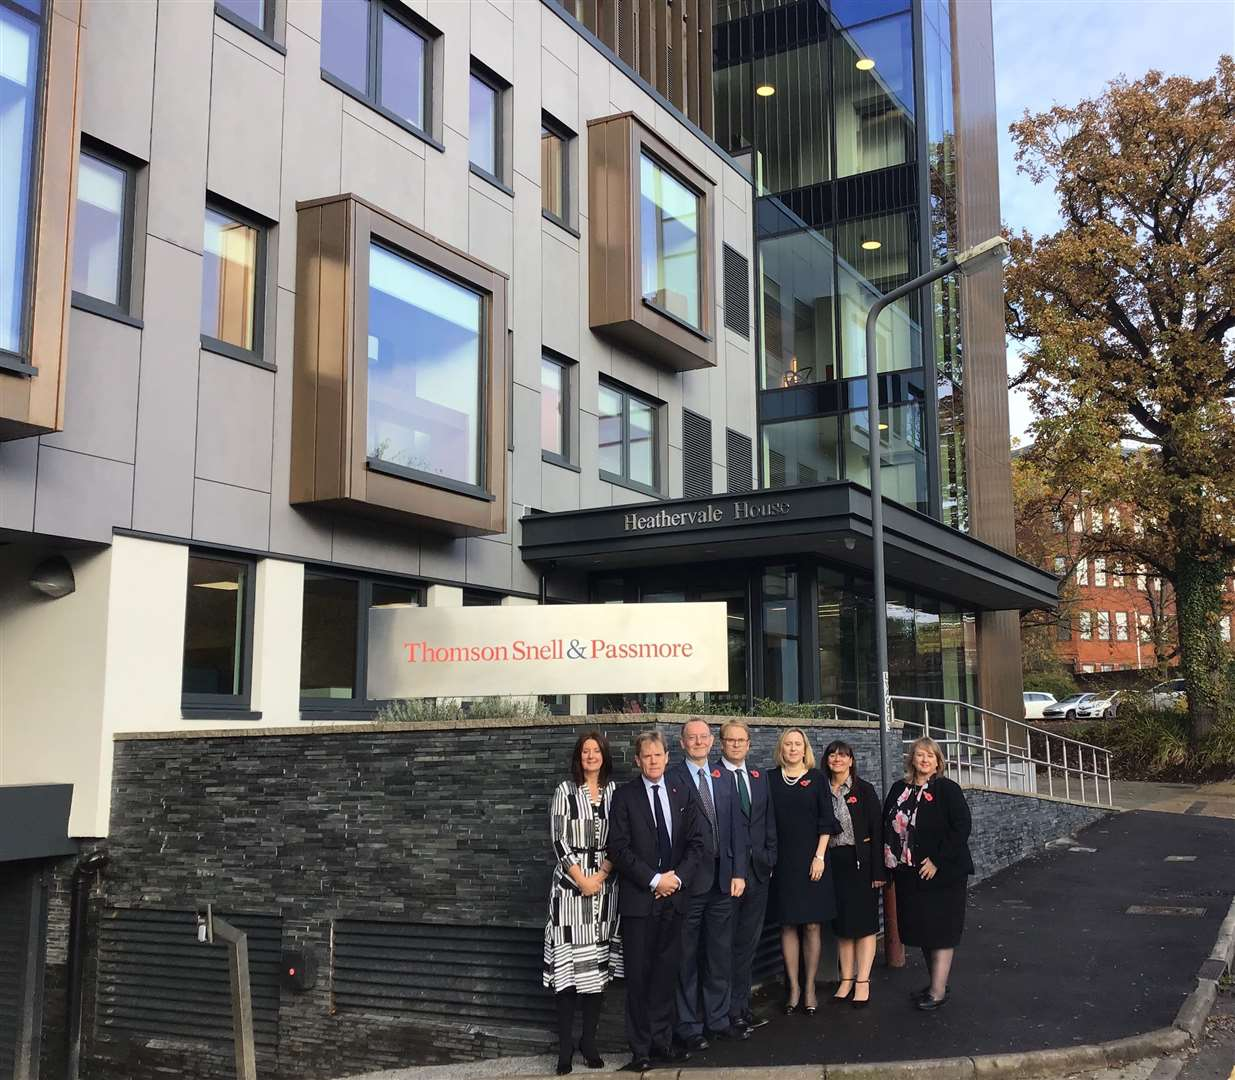 Thomson Snell & Passmore's new Tunbridge Wells offices